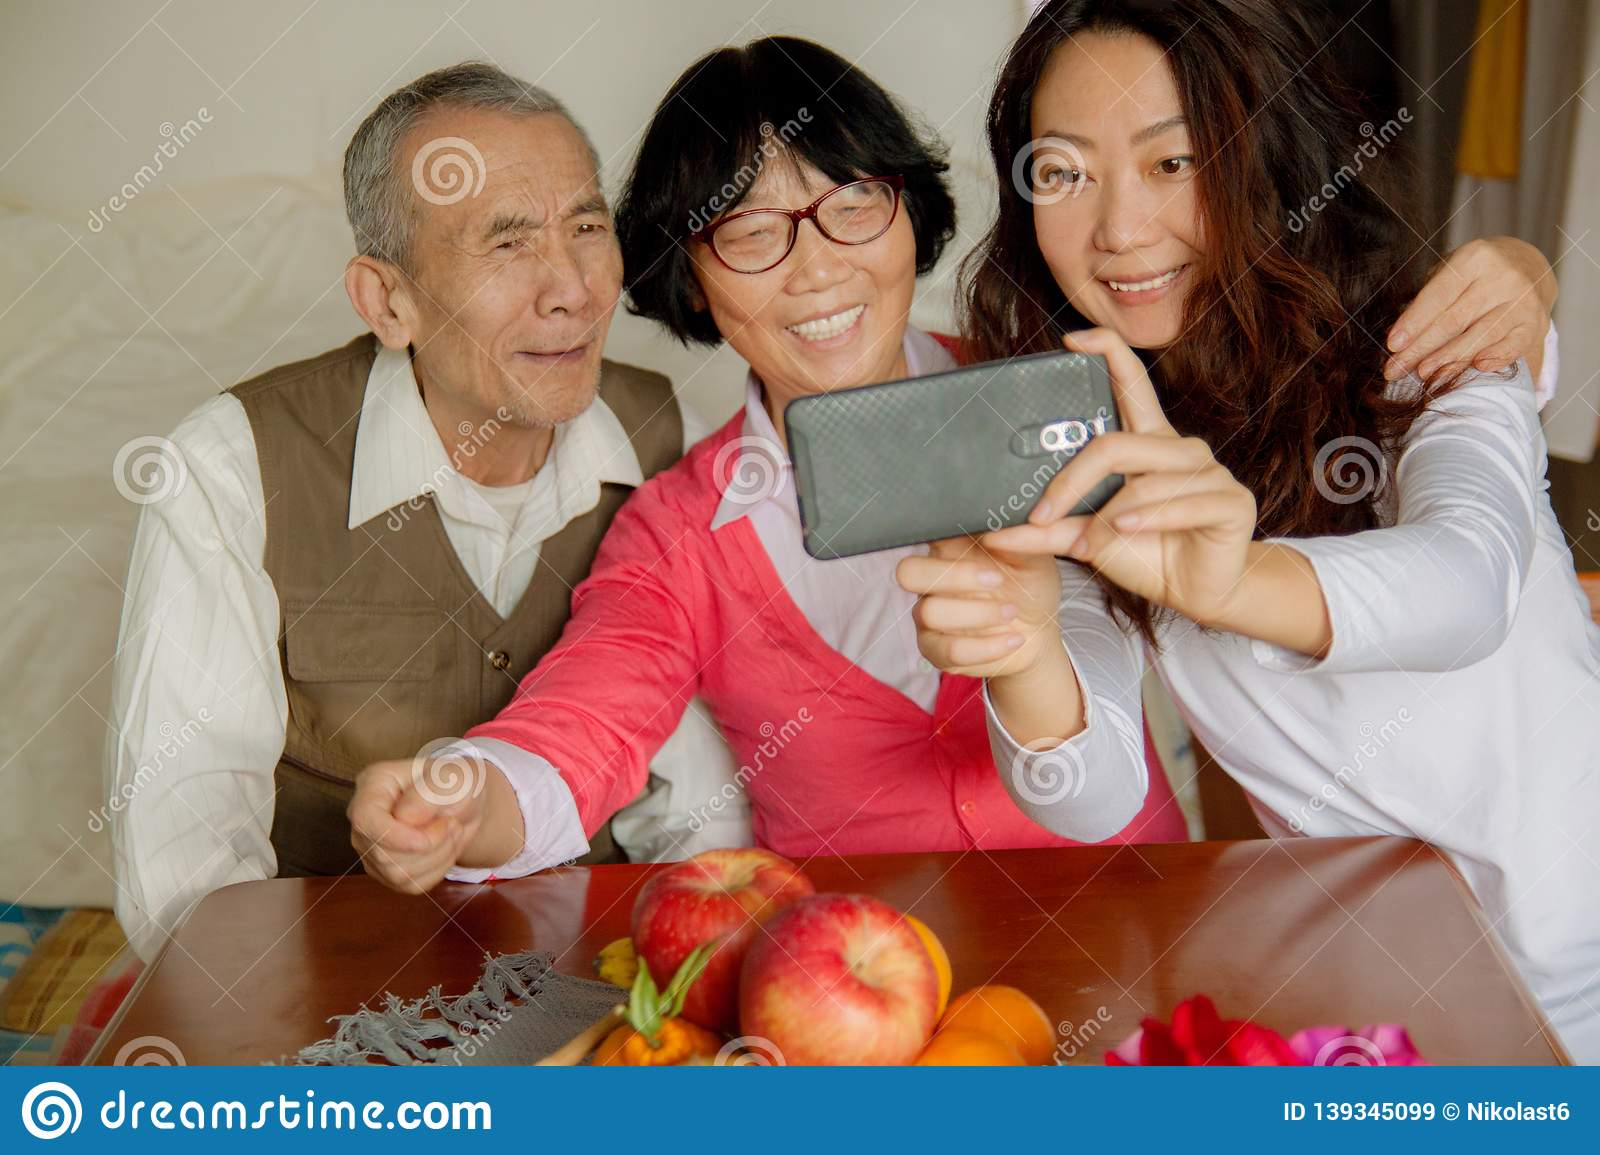 Daughter and senior parents using smartphone at home.